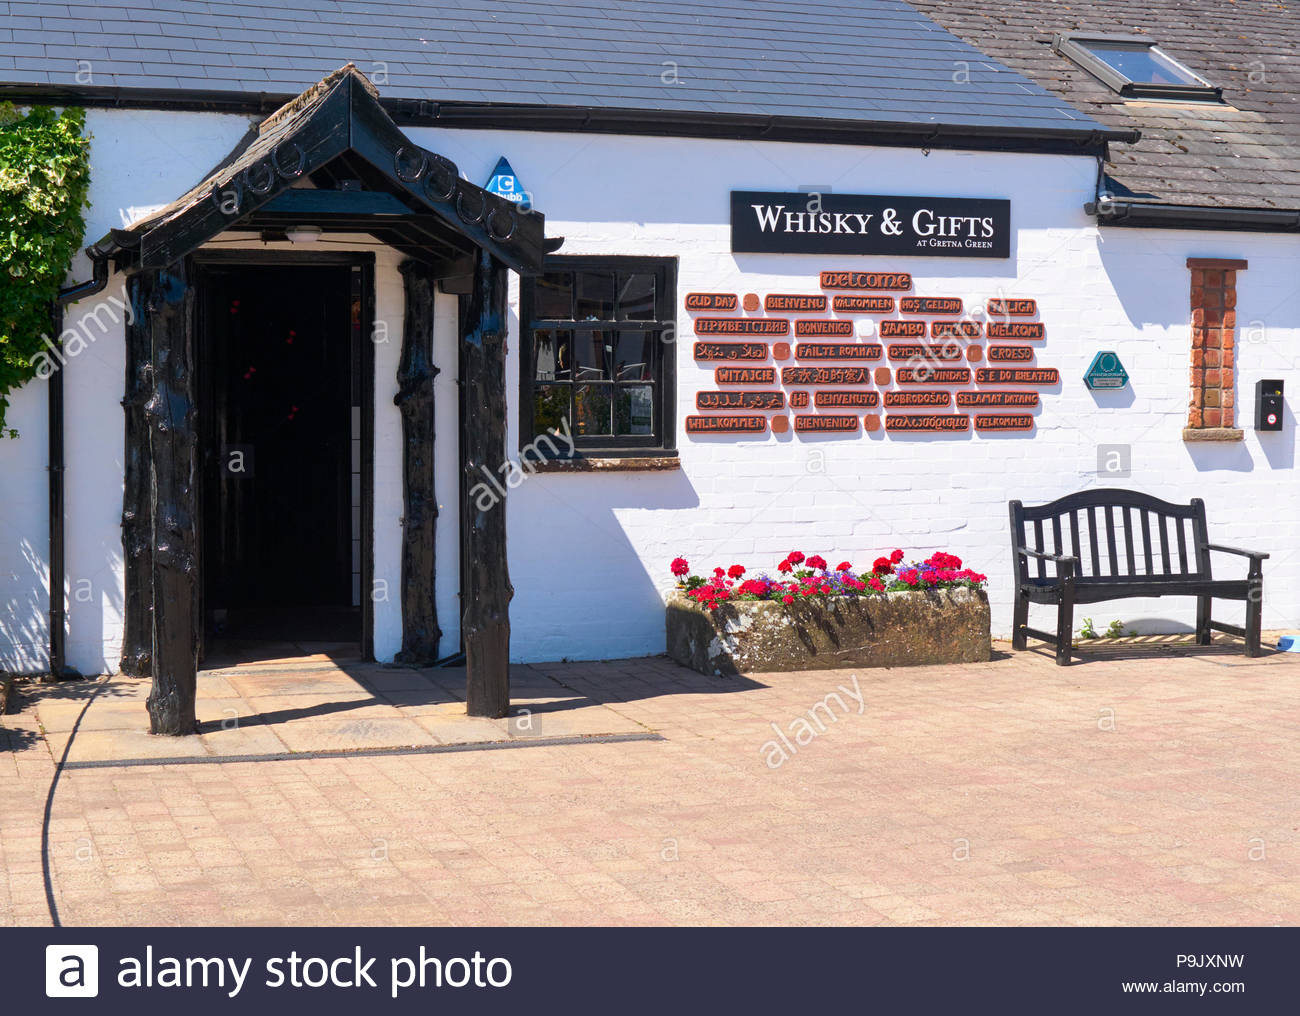 The whiskey and gift shop with welcome sign in many languages in gretna green in - Stock Image